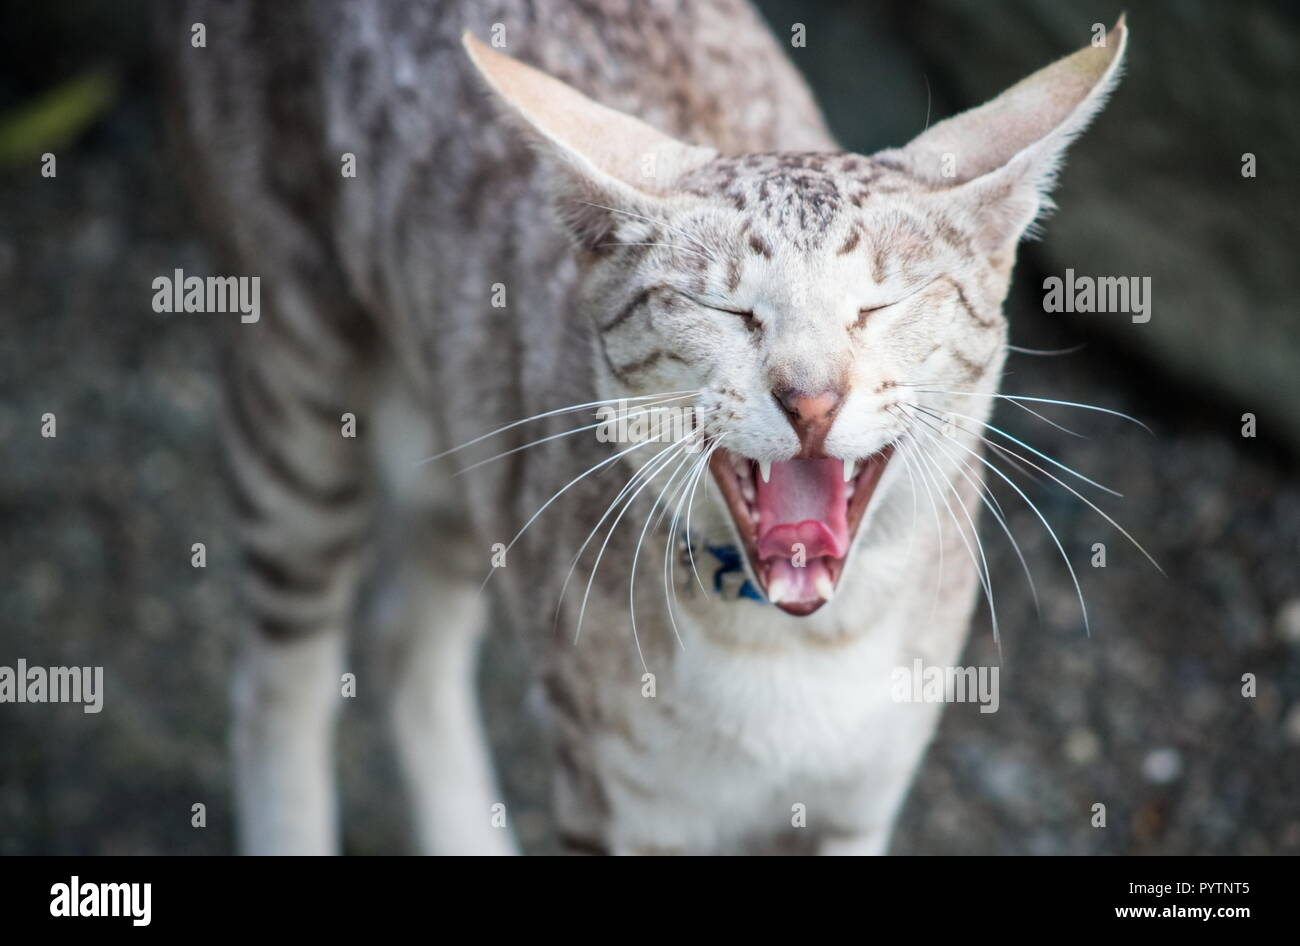 close up image of a cat meowing with copy space - Stock Image